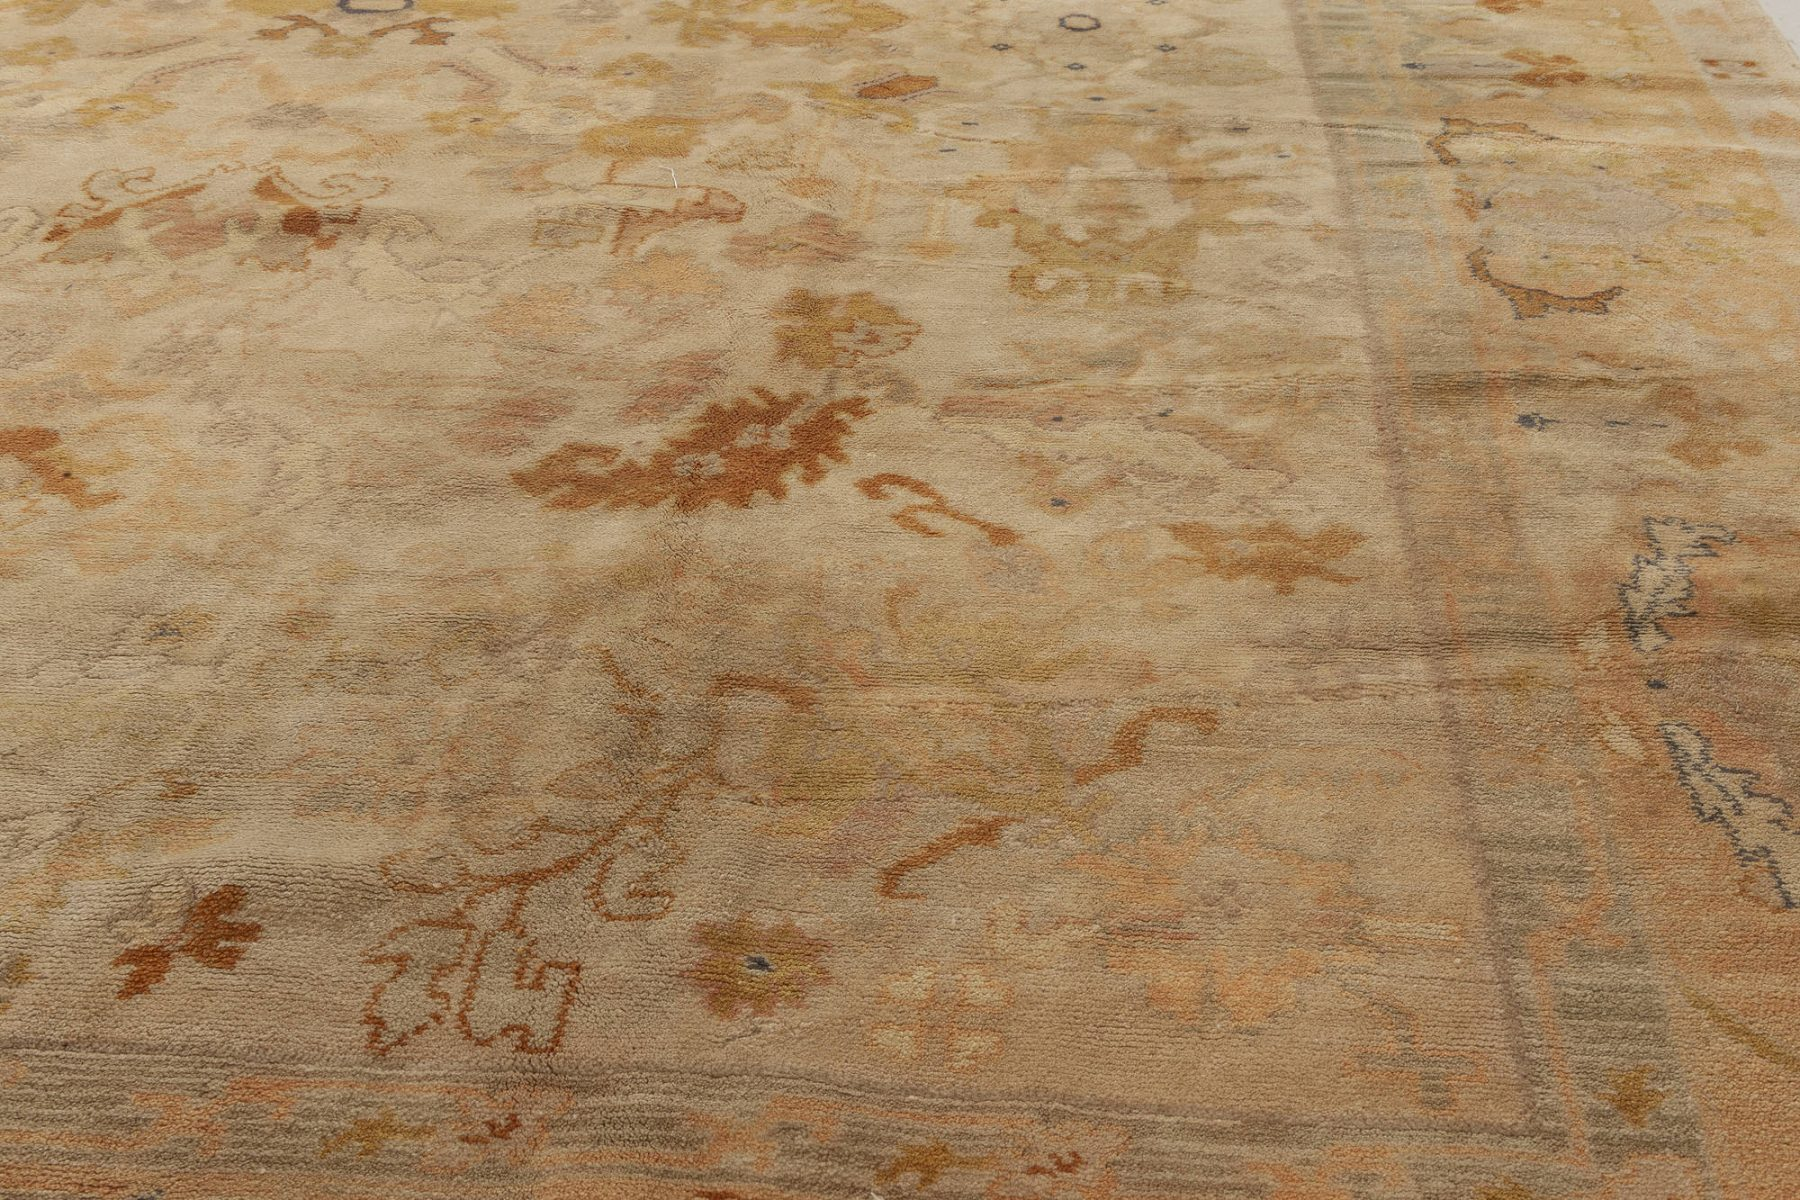 Spanish Beige, Blue, Brown and Orange Hand Knotted Wool Rug BB6963